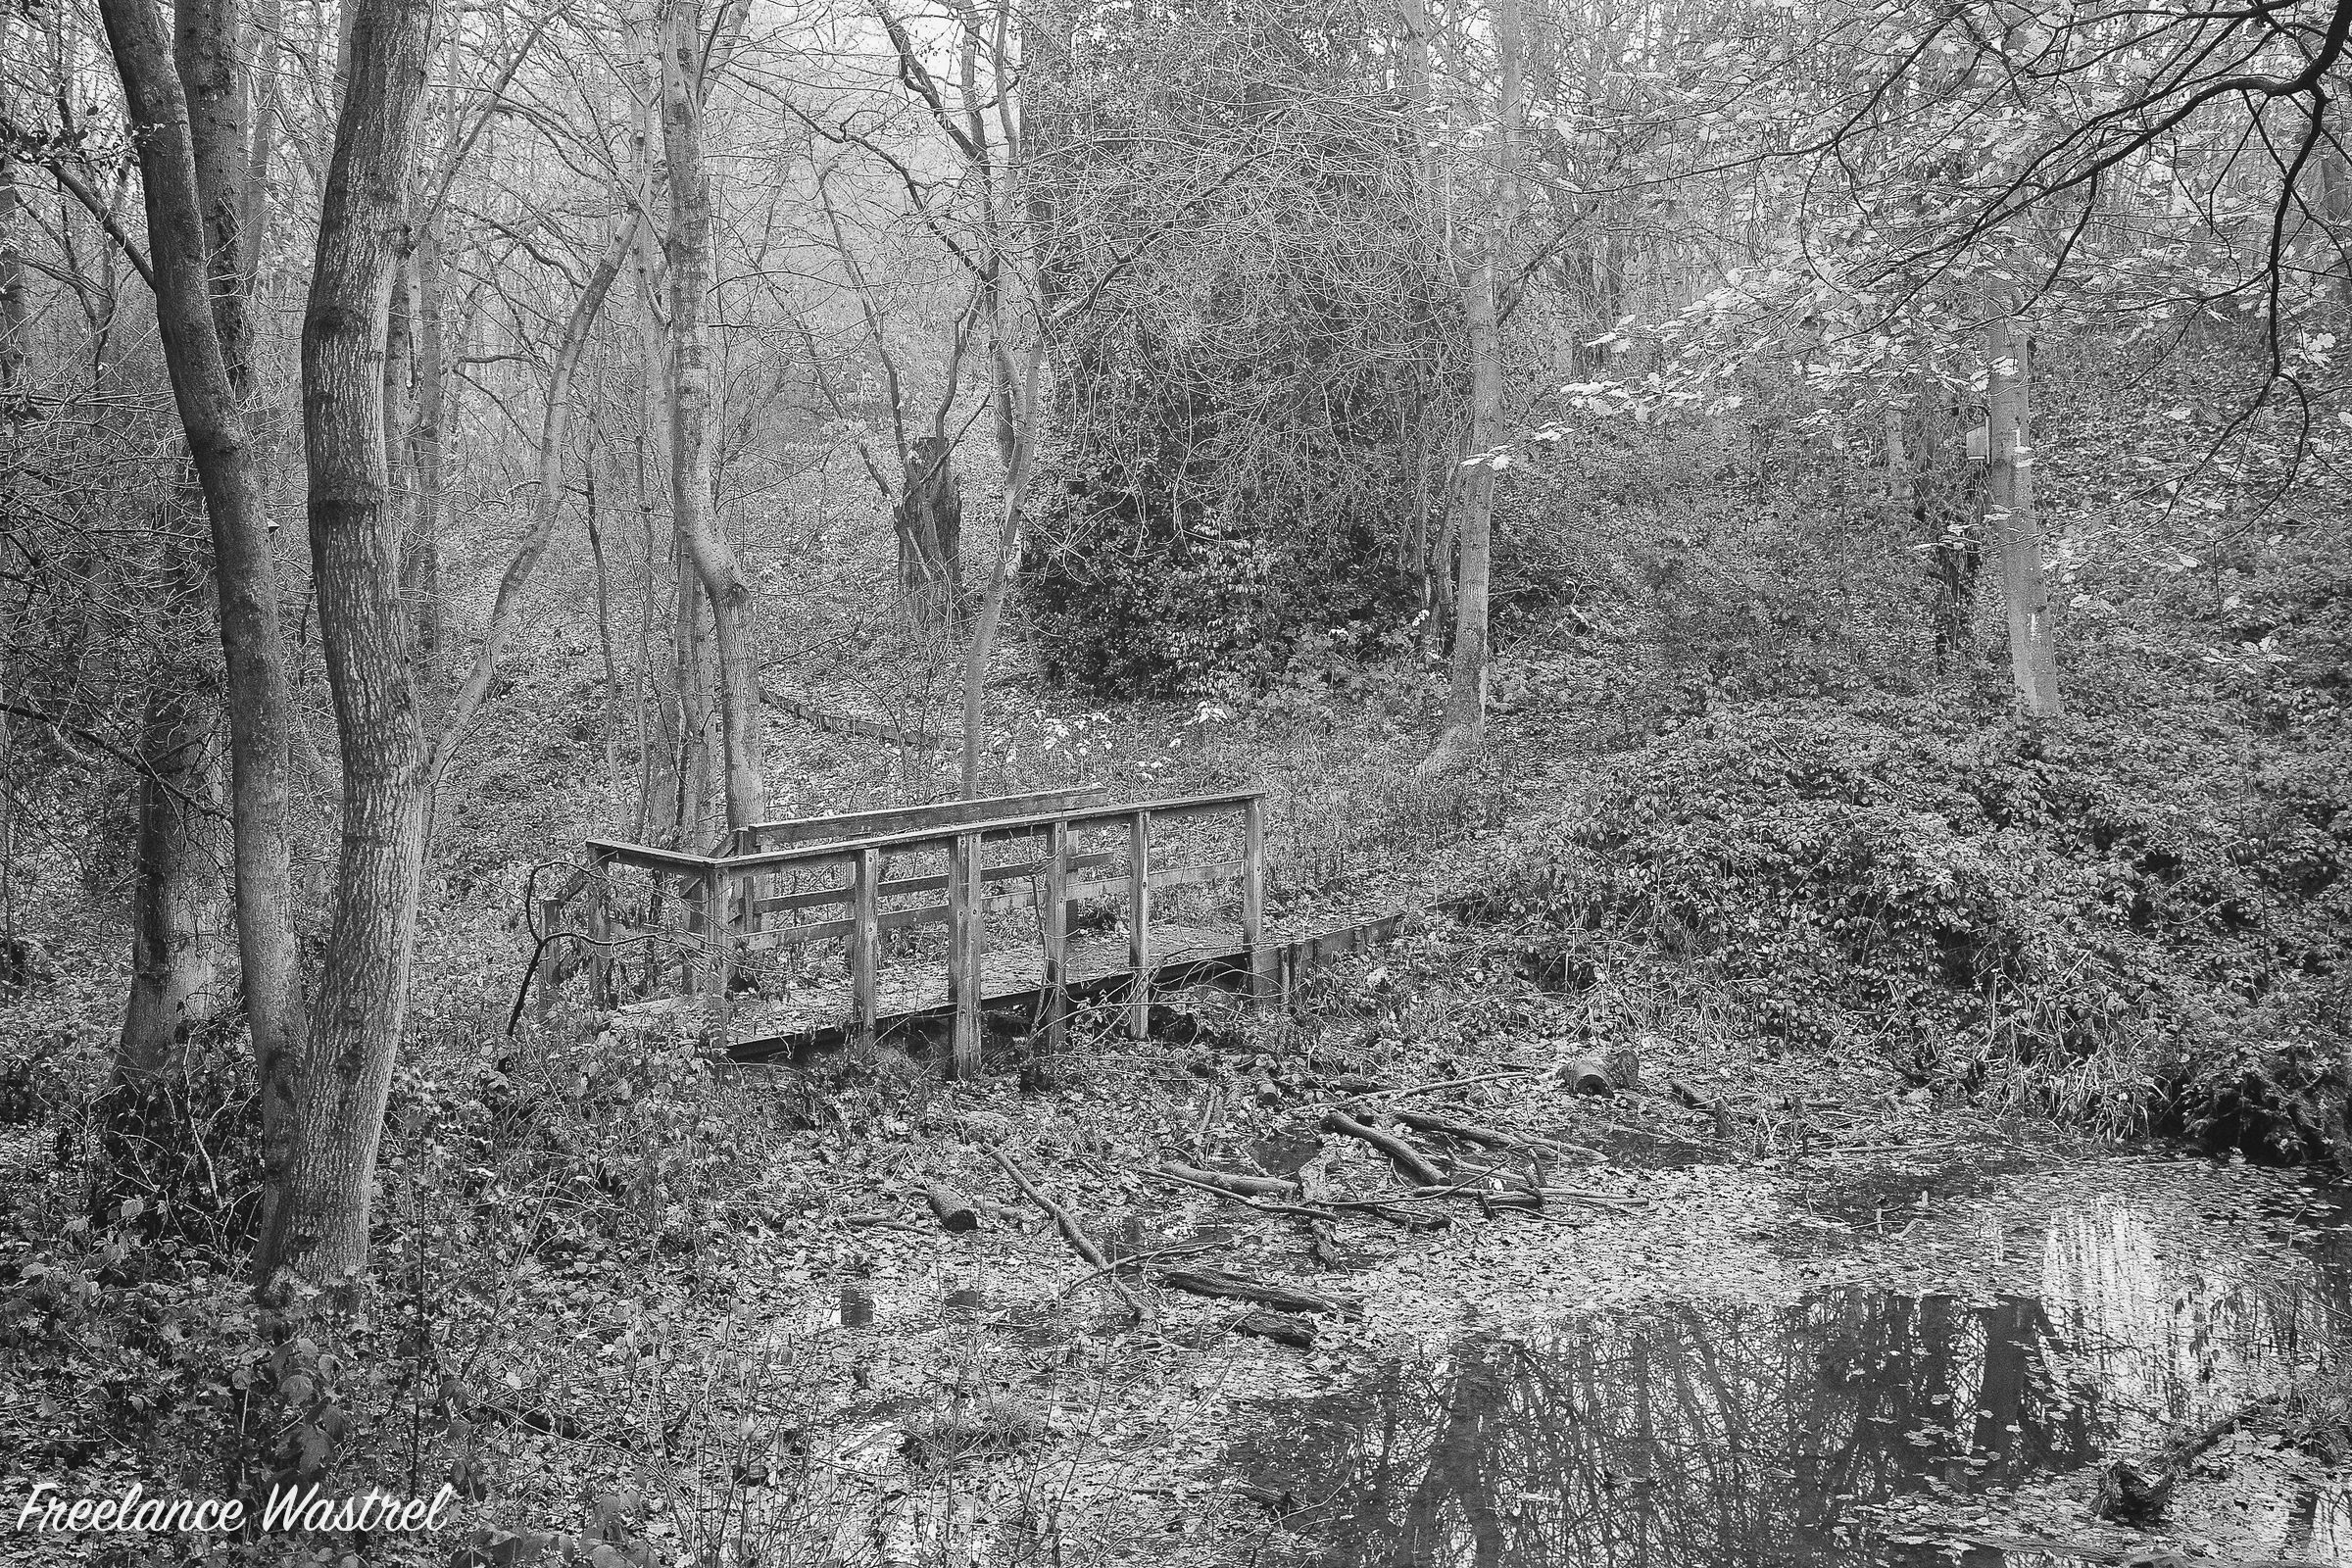 Boardwalk, Carr Wood, December 2018